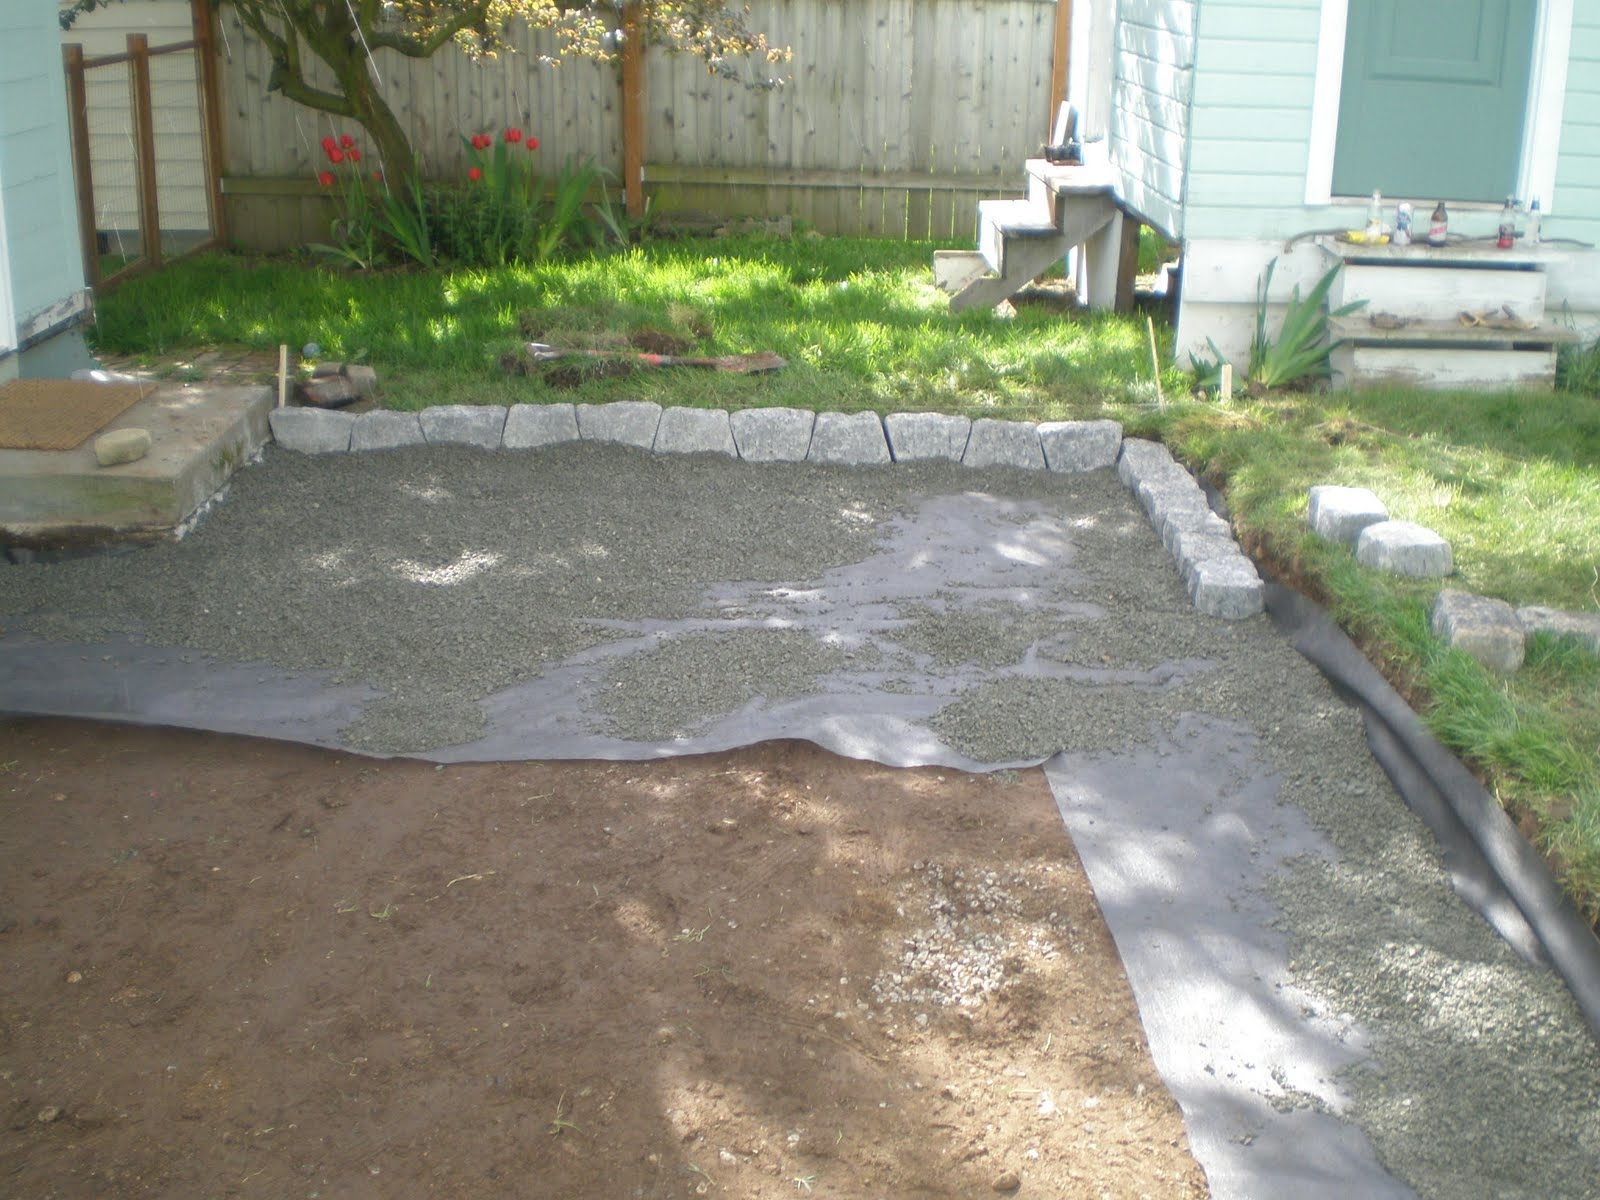 Backyard Mulch Patio :  were done excavating the area we laid down landscape cloth and gravel